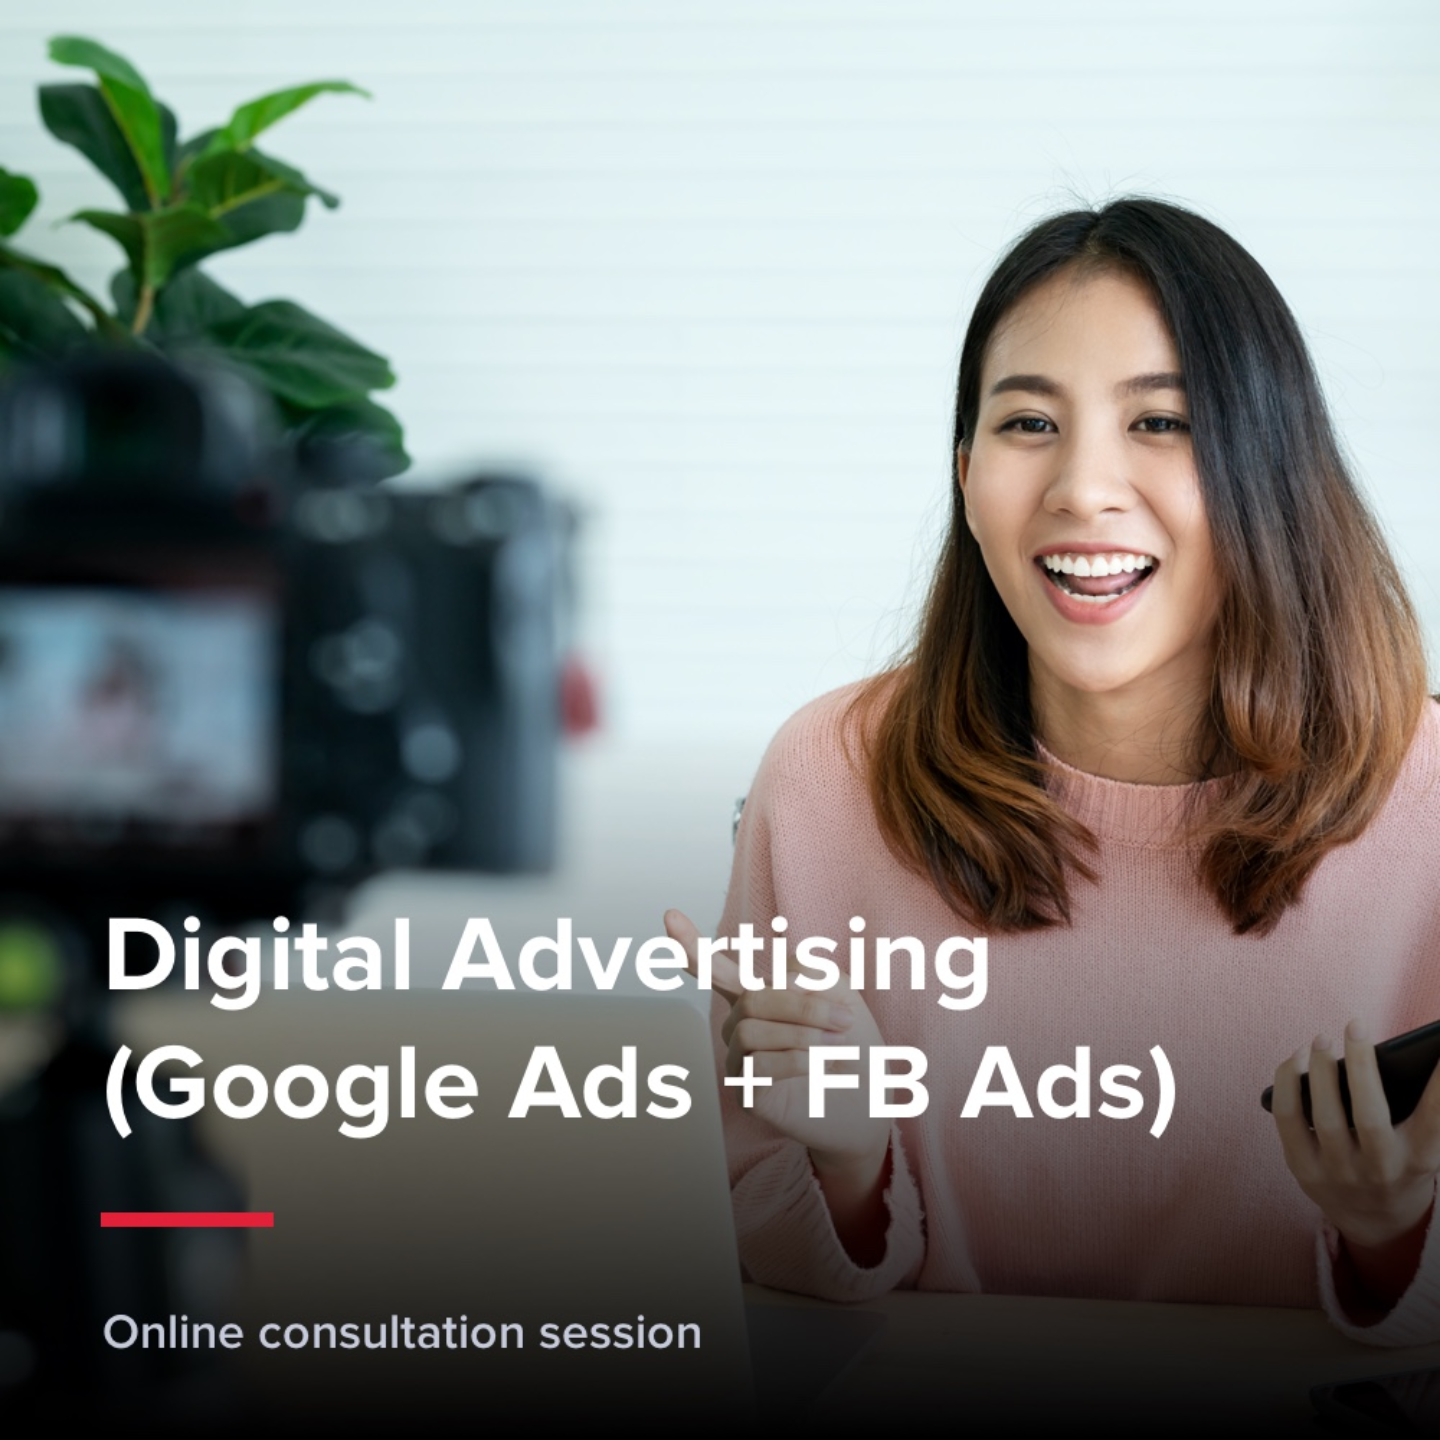 Digital Advertising (Google Ads + FB Ads)